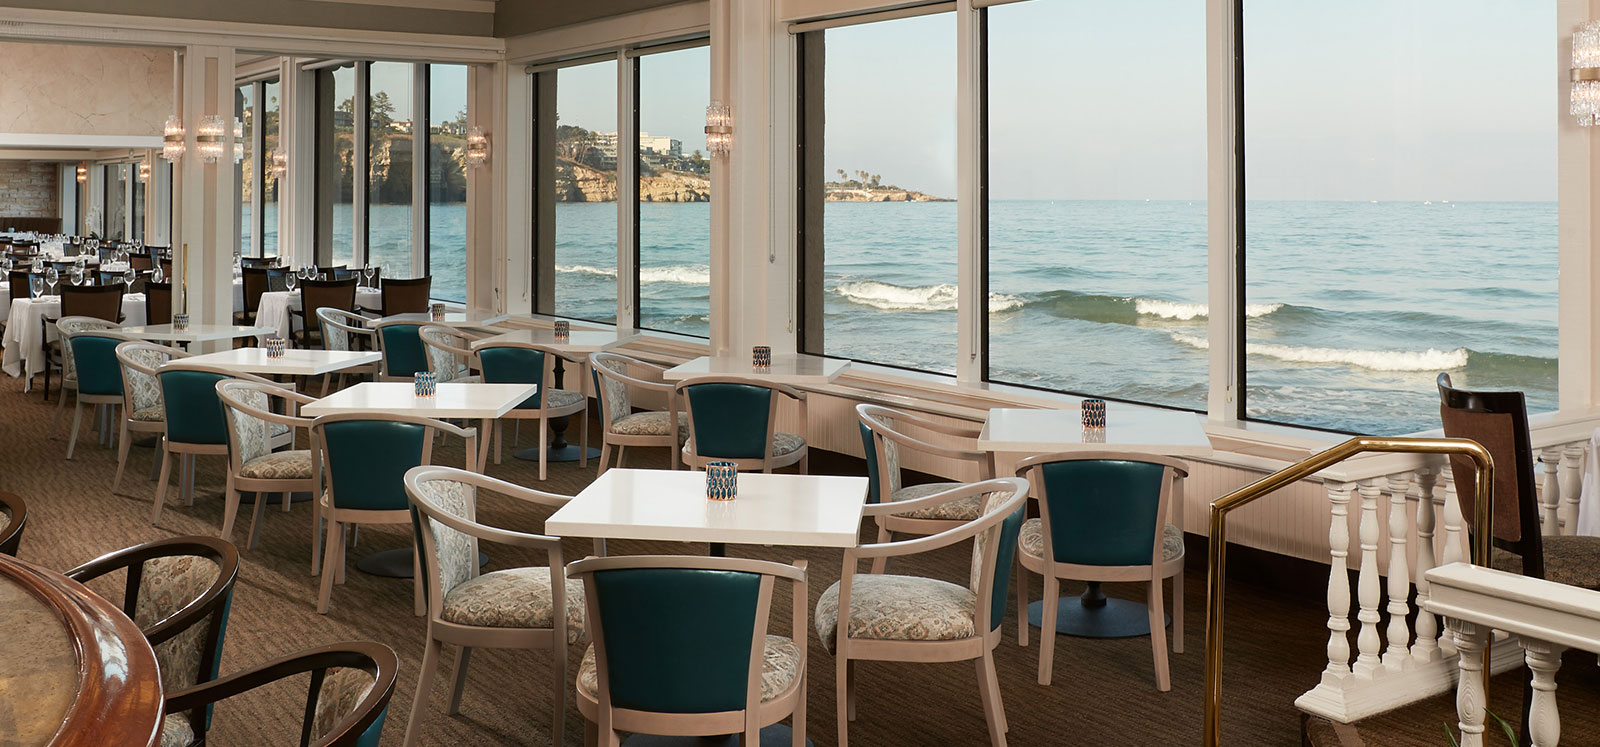 The Marine Room Restaurant In La Jolla